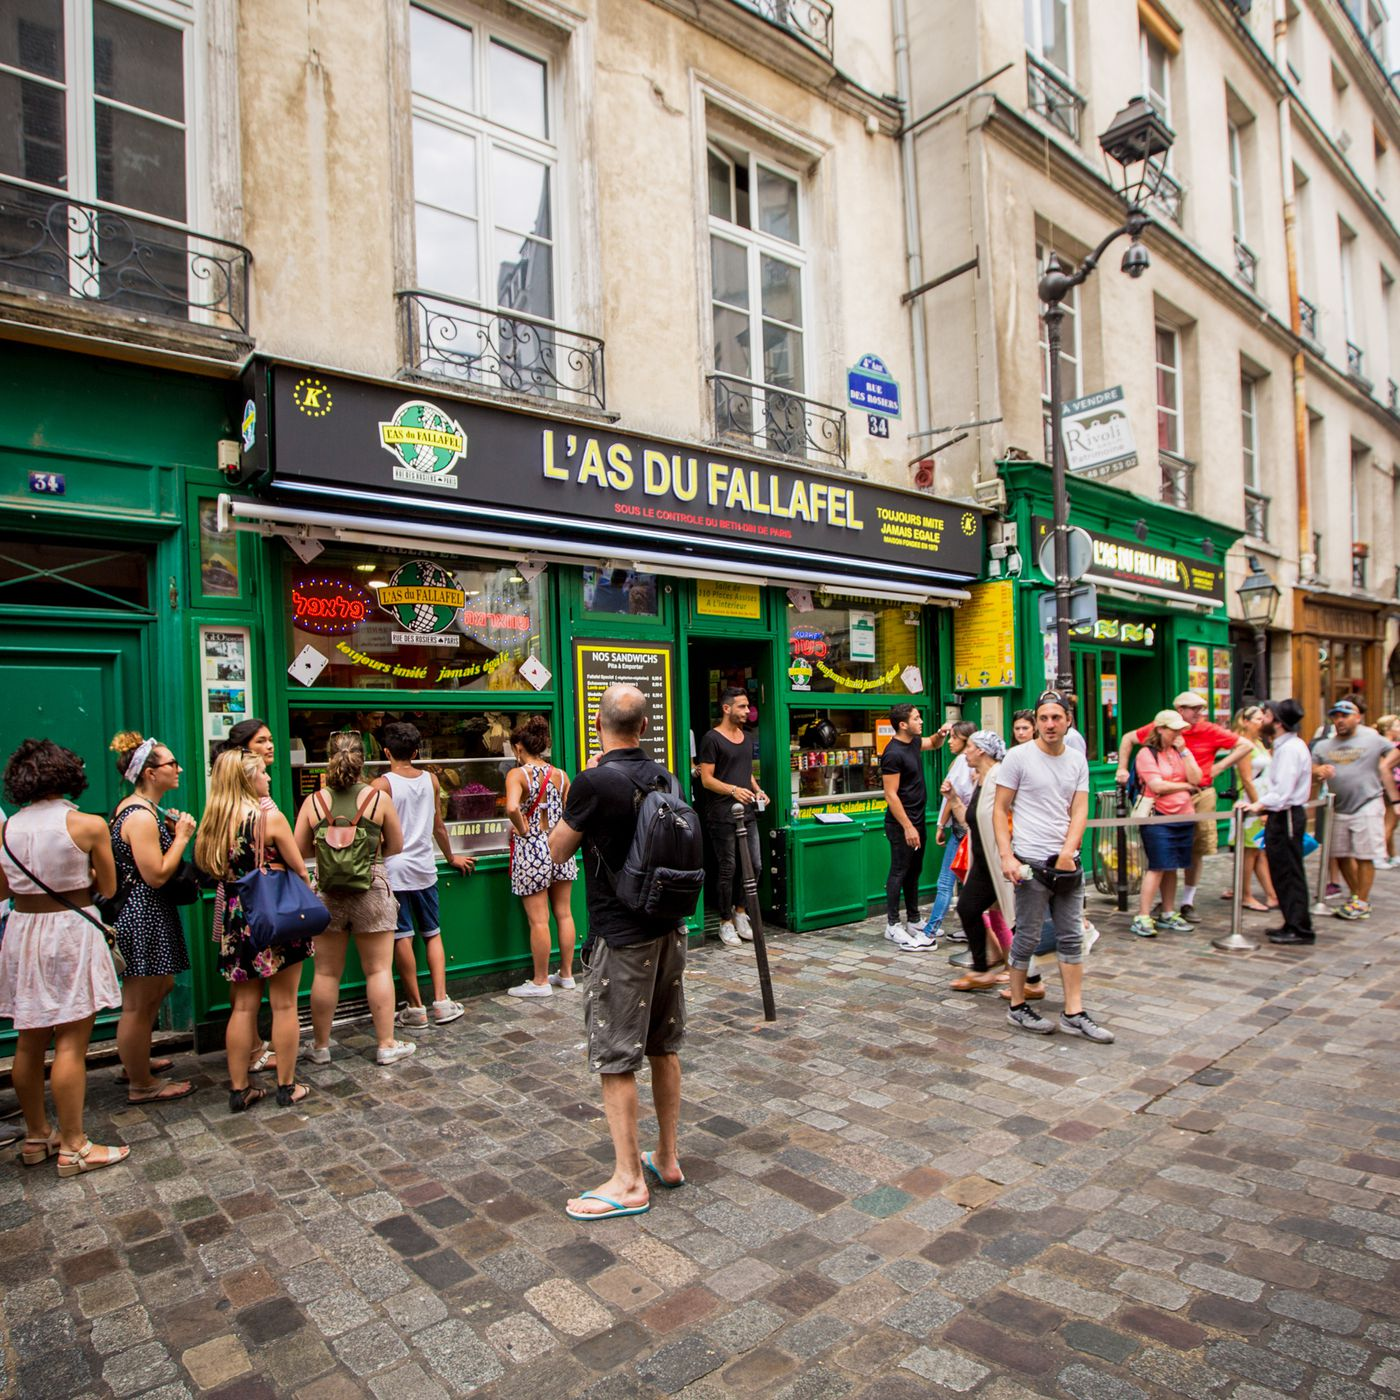 Where to Eat in the Marais - Eater